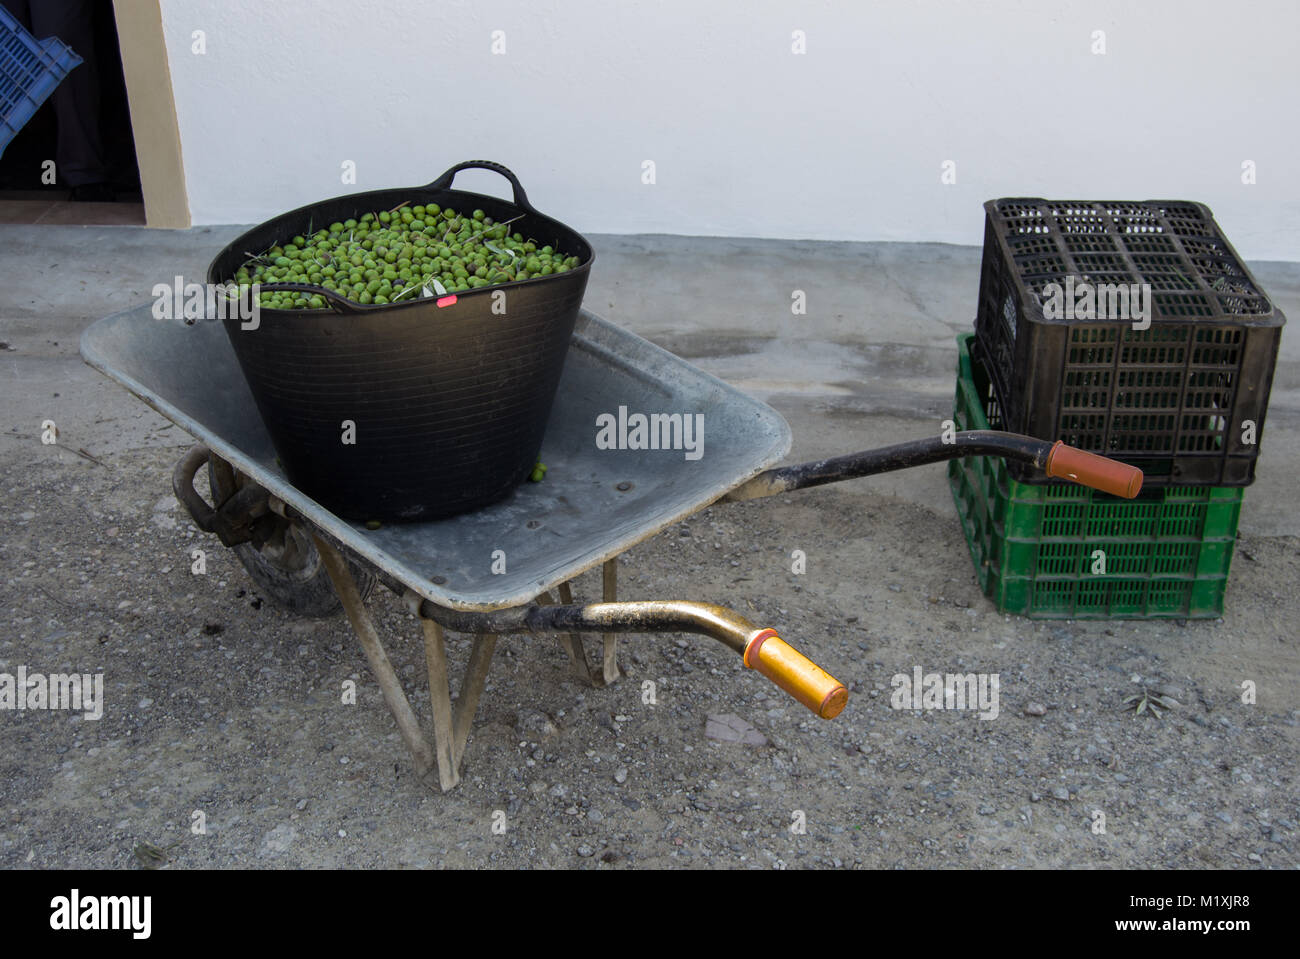 A bucket full of olives on a handcart in a farm field in Andalusia. Harvest of the olive trees. - Stock Image